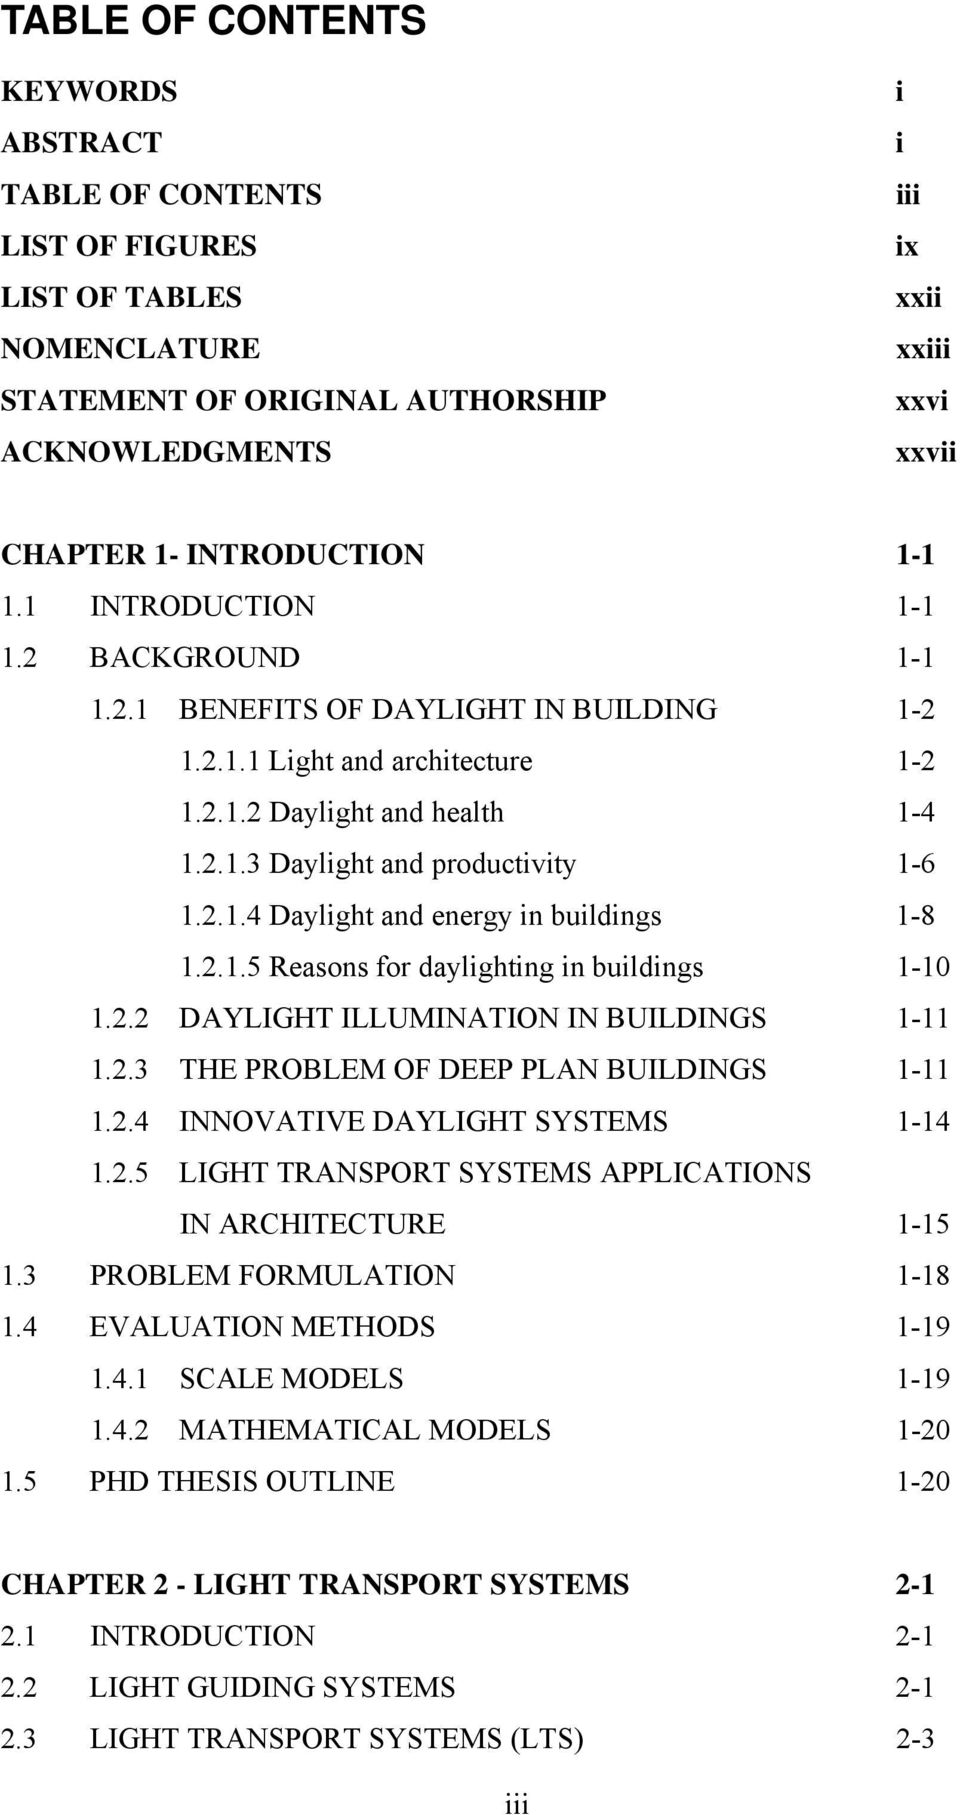 2.1.4 Daylight and energy in buildings 1-8 1.2.1.5 Reasons for daylighting in buildings 1-10 1.2.2 DAYLIGHT ILLUMINATION IN BUILDINGS 1-11 1.2.3 THE PROBLEM OF DEEP PLAN BUILDINGS 1-11 1.2.4 INNOVATIVE DAYLIGHT SYSTEMS 1-14 1.